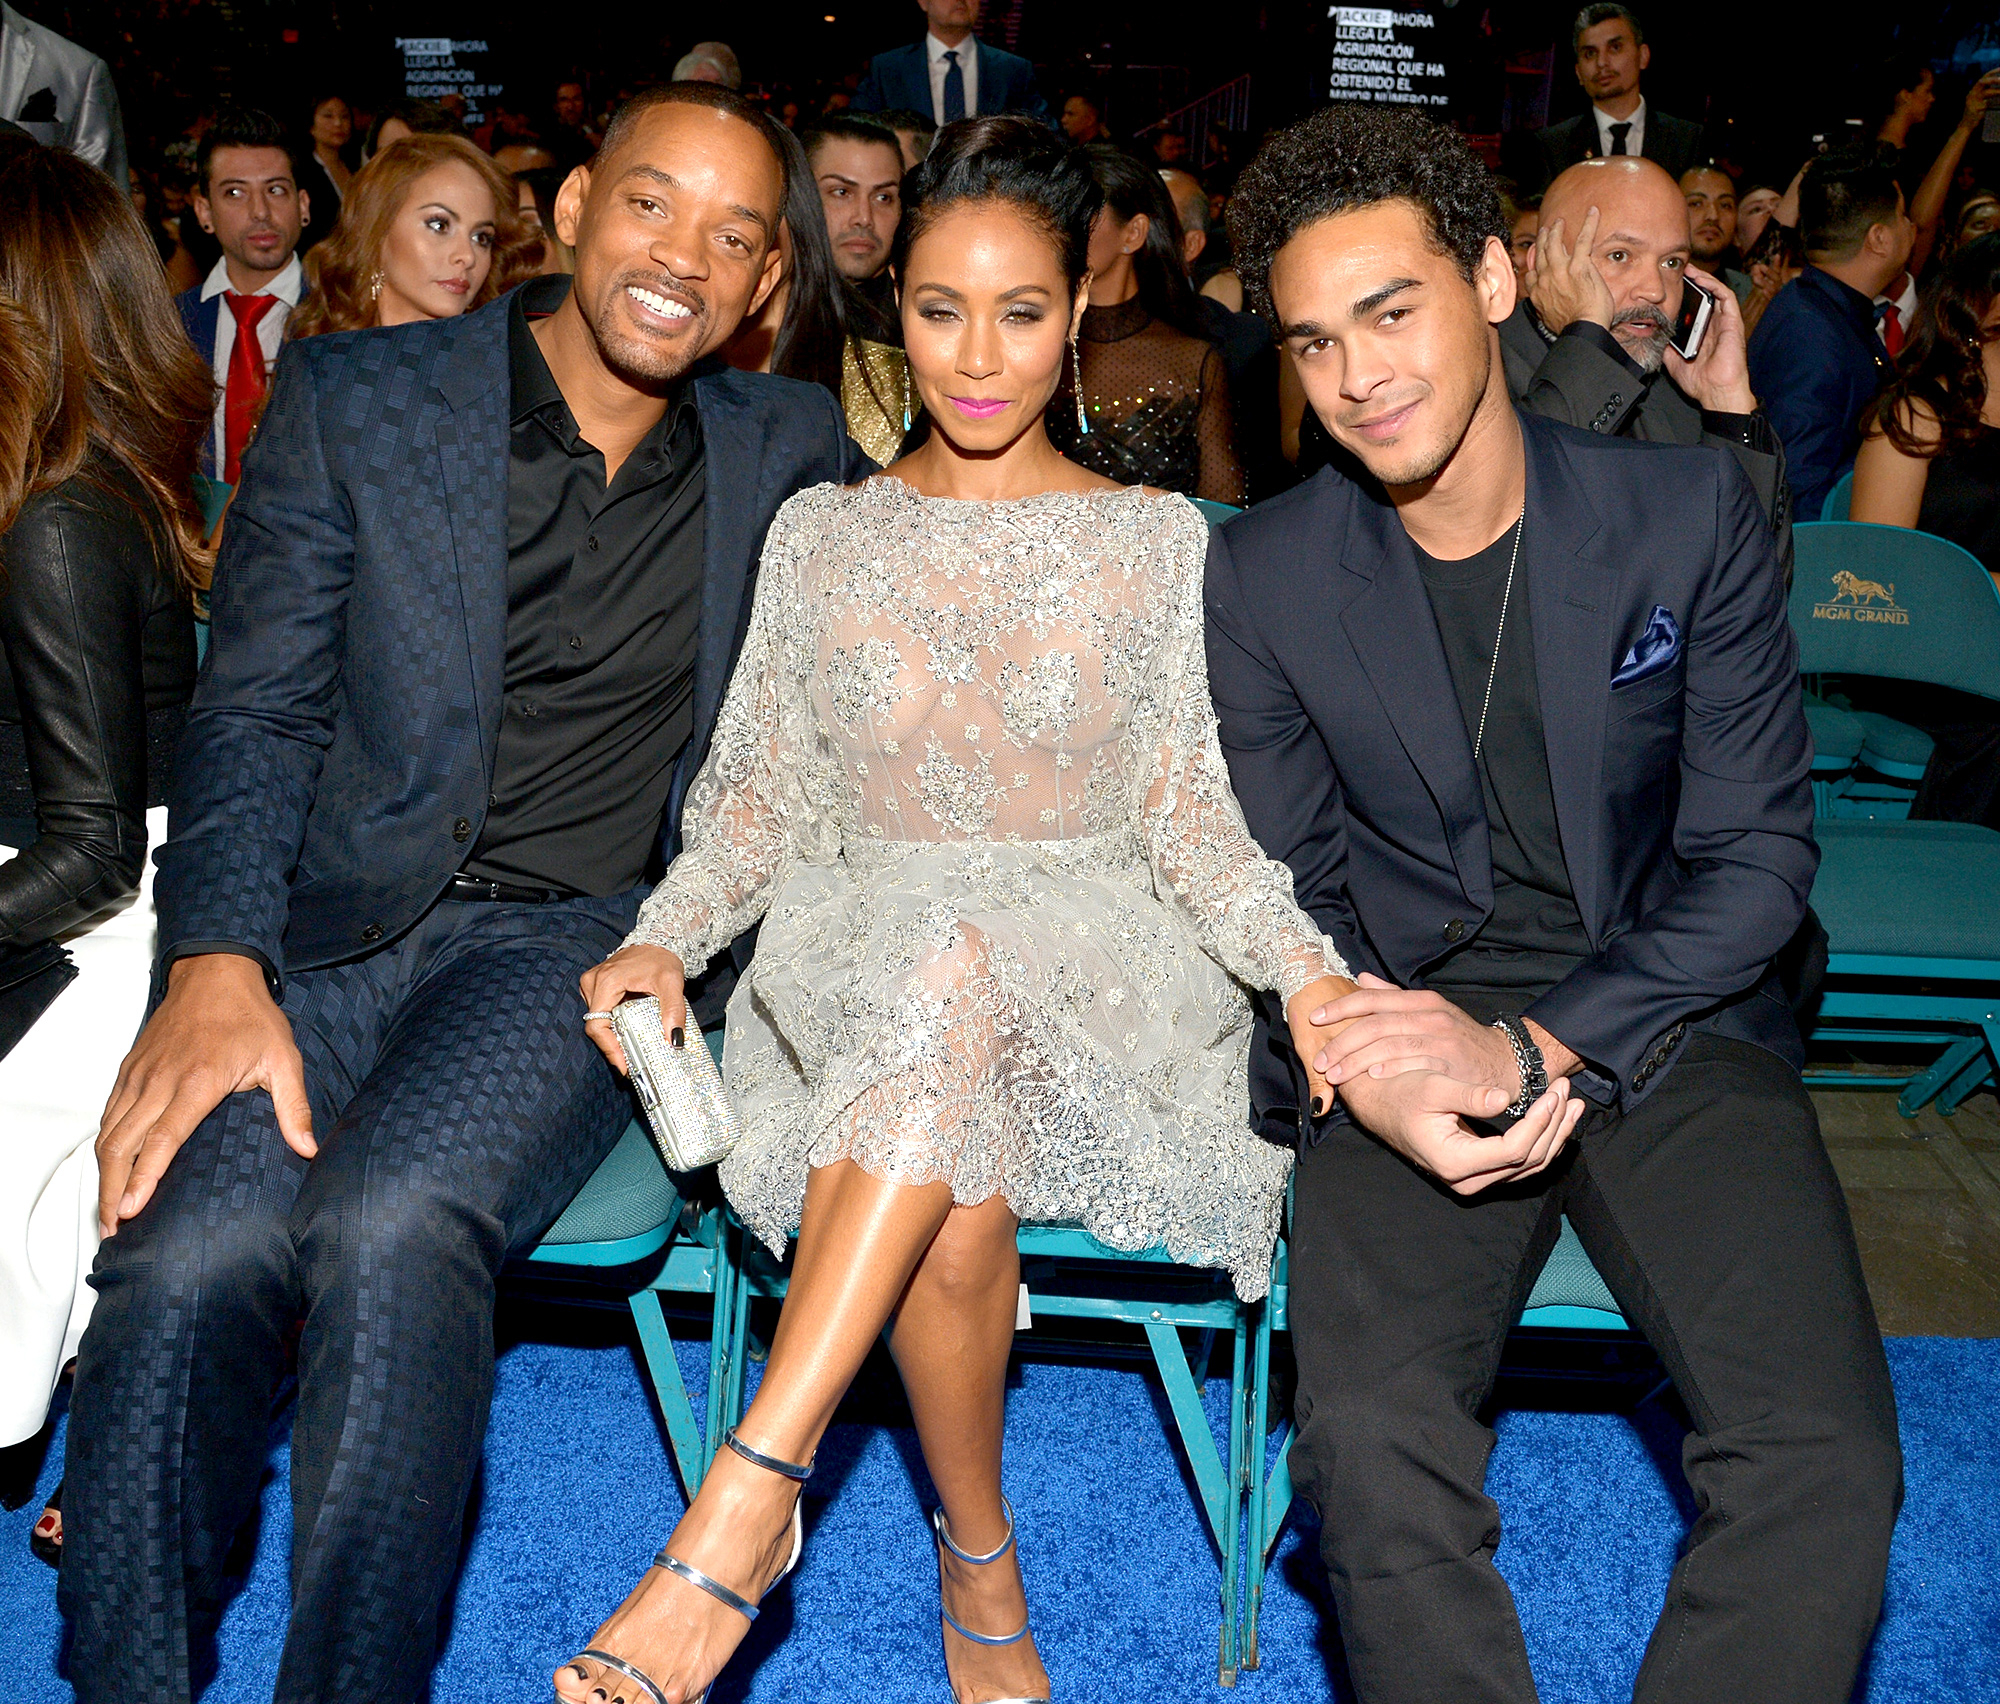 Will Smith, Jada Pinkett Smith and Trey Smith attend the 16th Latin GRAMMY Awards at the MGM Grand Garden Arena on November 19, 2015 in Las Vegas, Nevada.